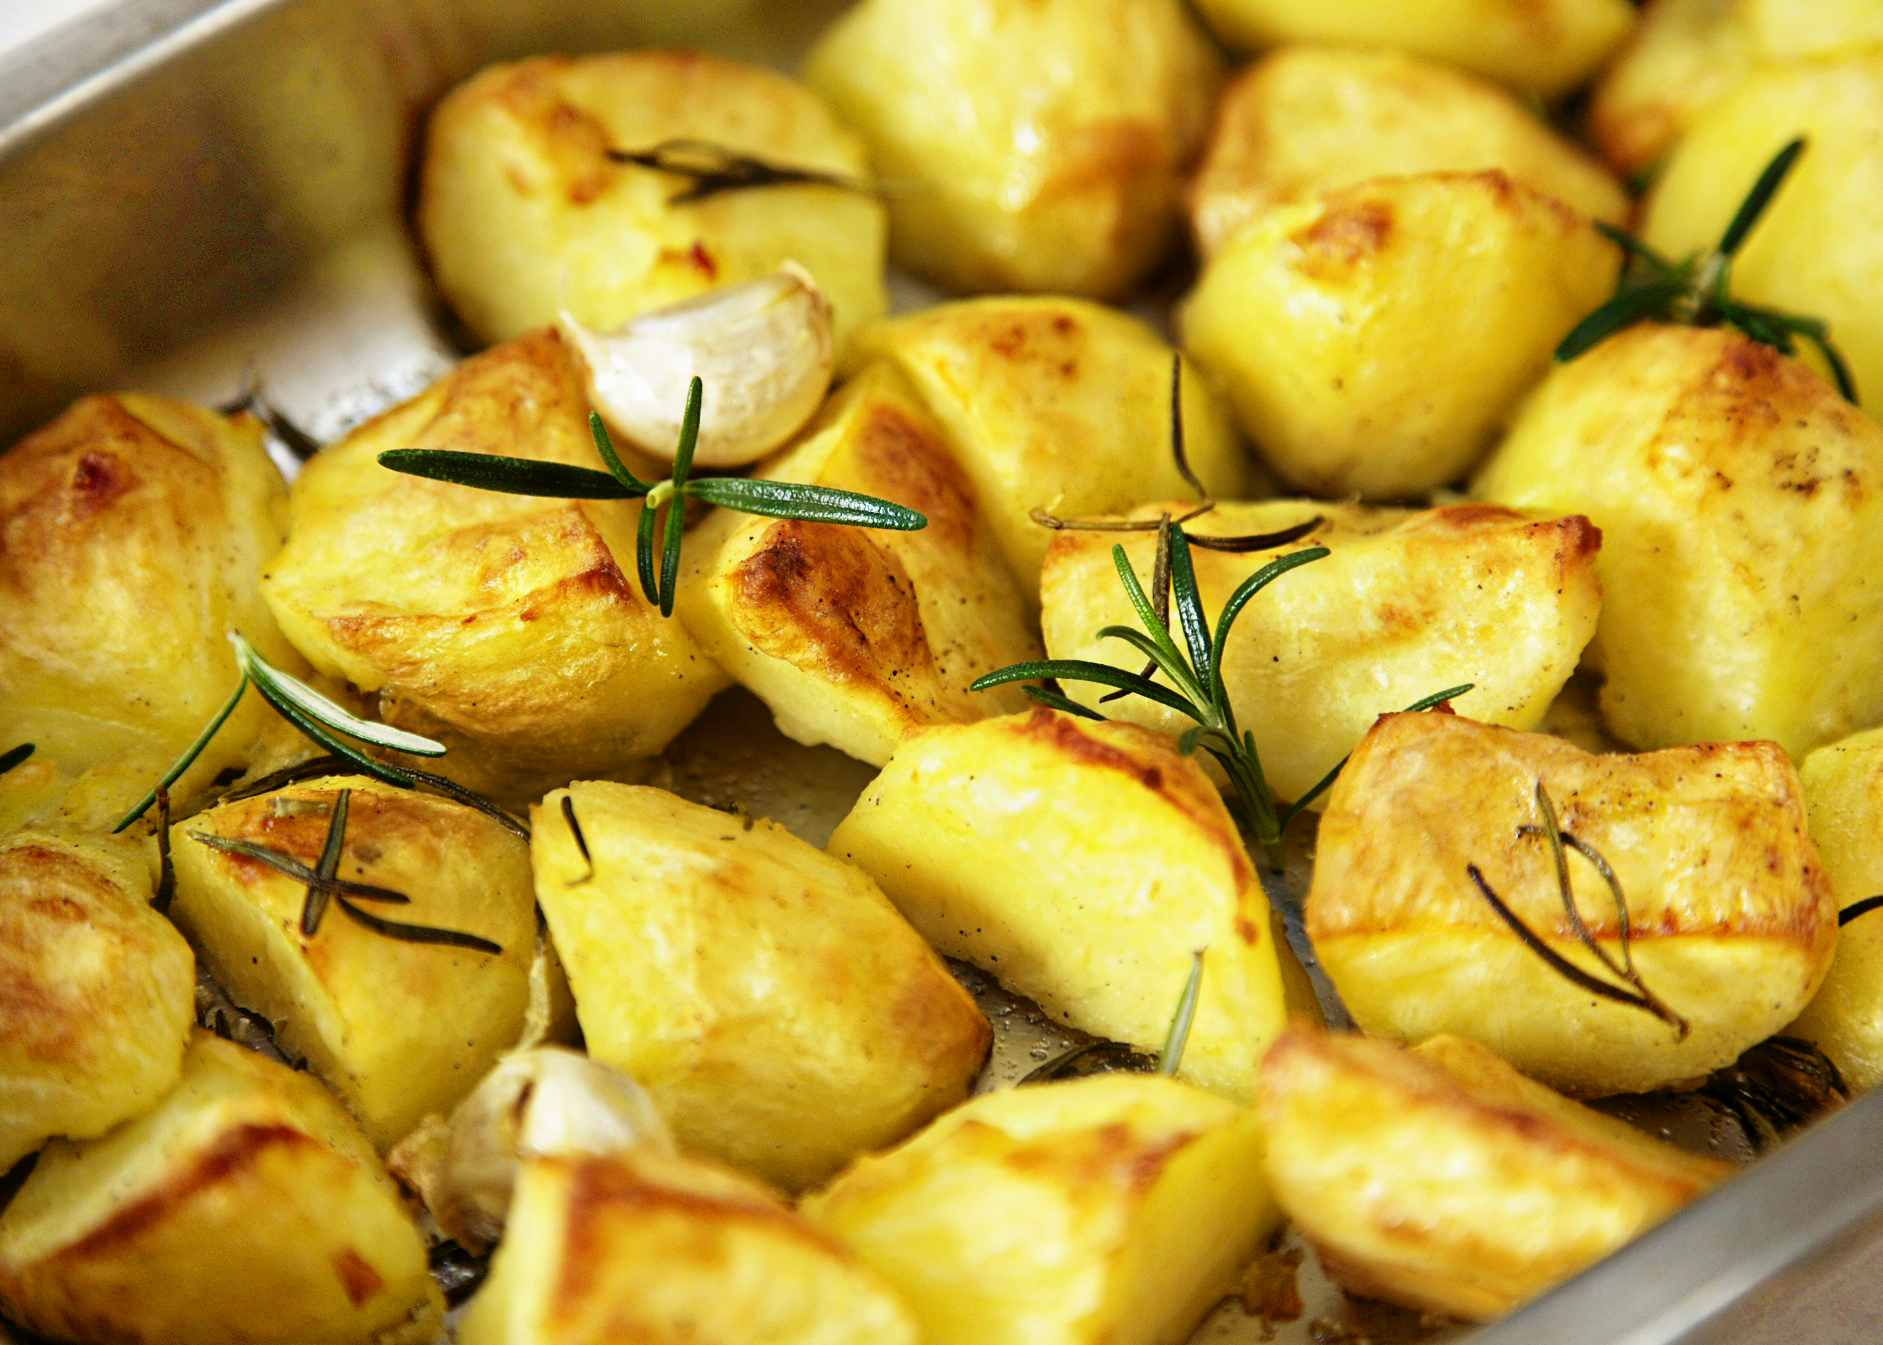 Roast potatoes with rosemary and garlic - Lemon Squeezy